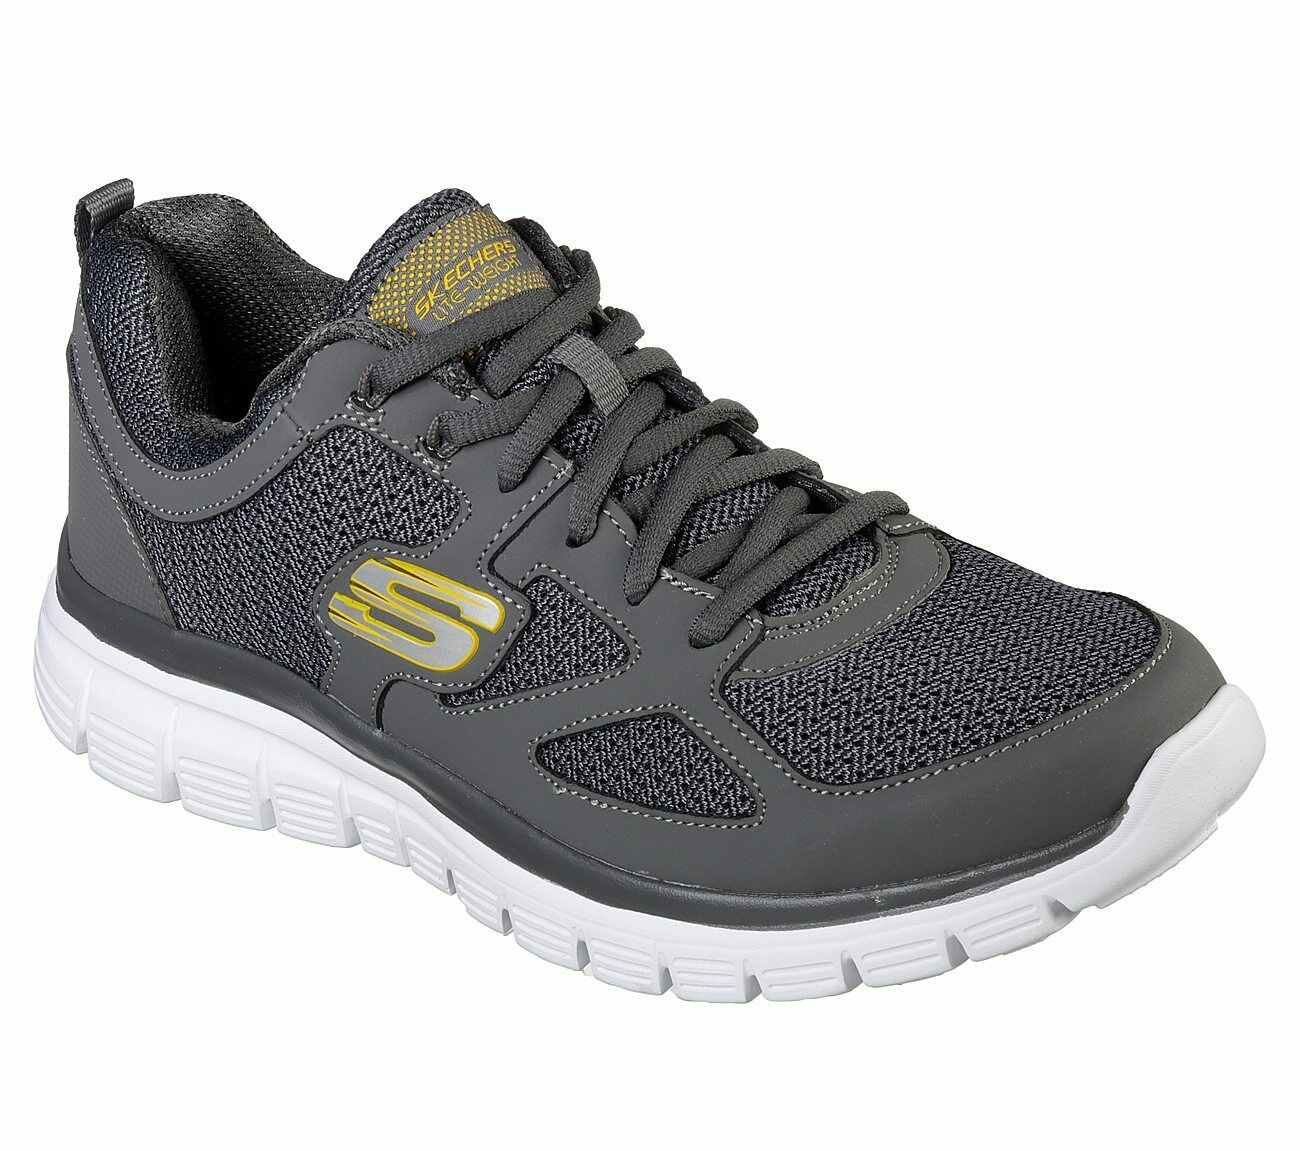 Skechers Mens Flex Agoura Trainers Sports Shoes Lace Up Breathable Lightweight